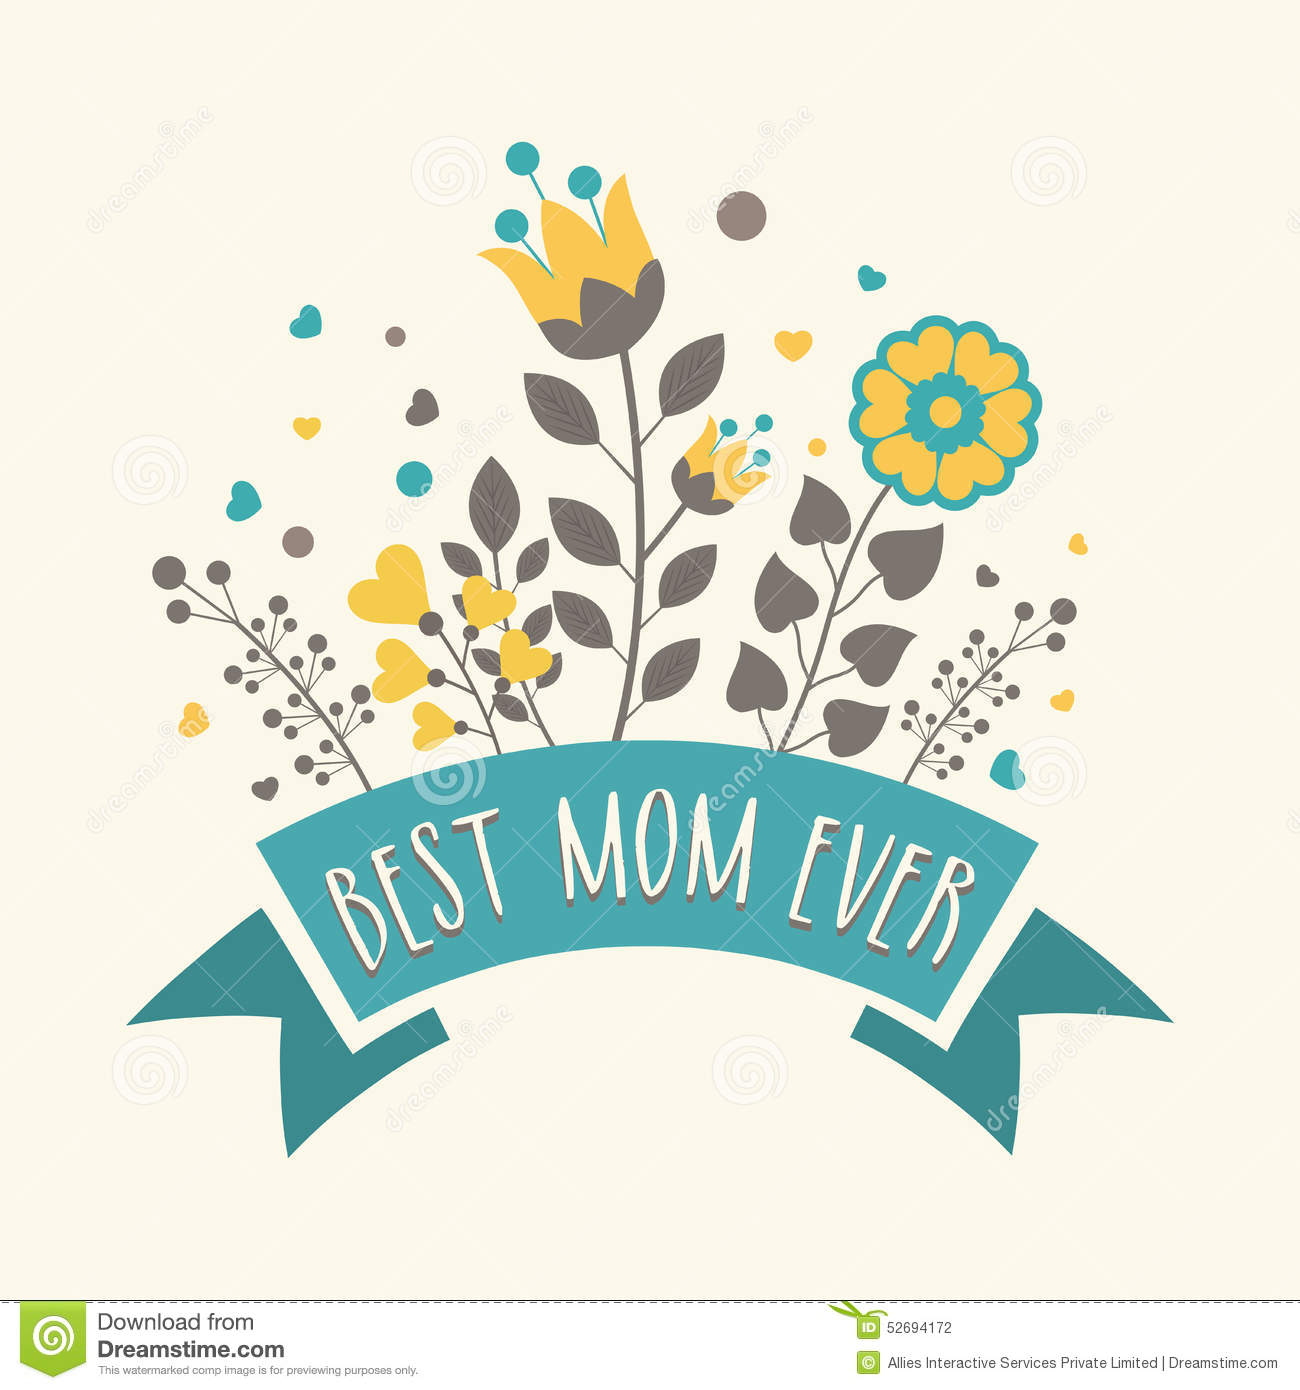 Greeting Card Design For Happy Mothers Day Celebration